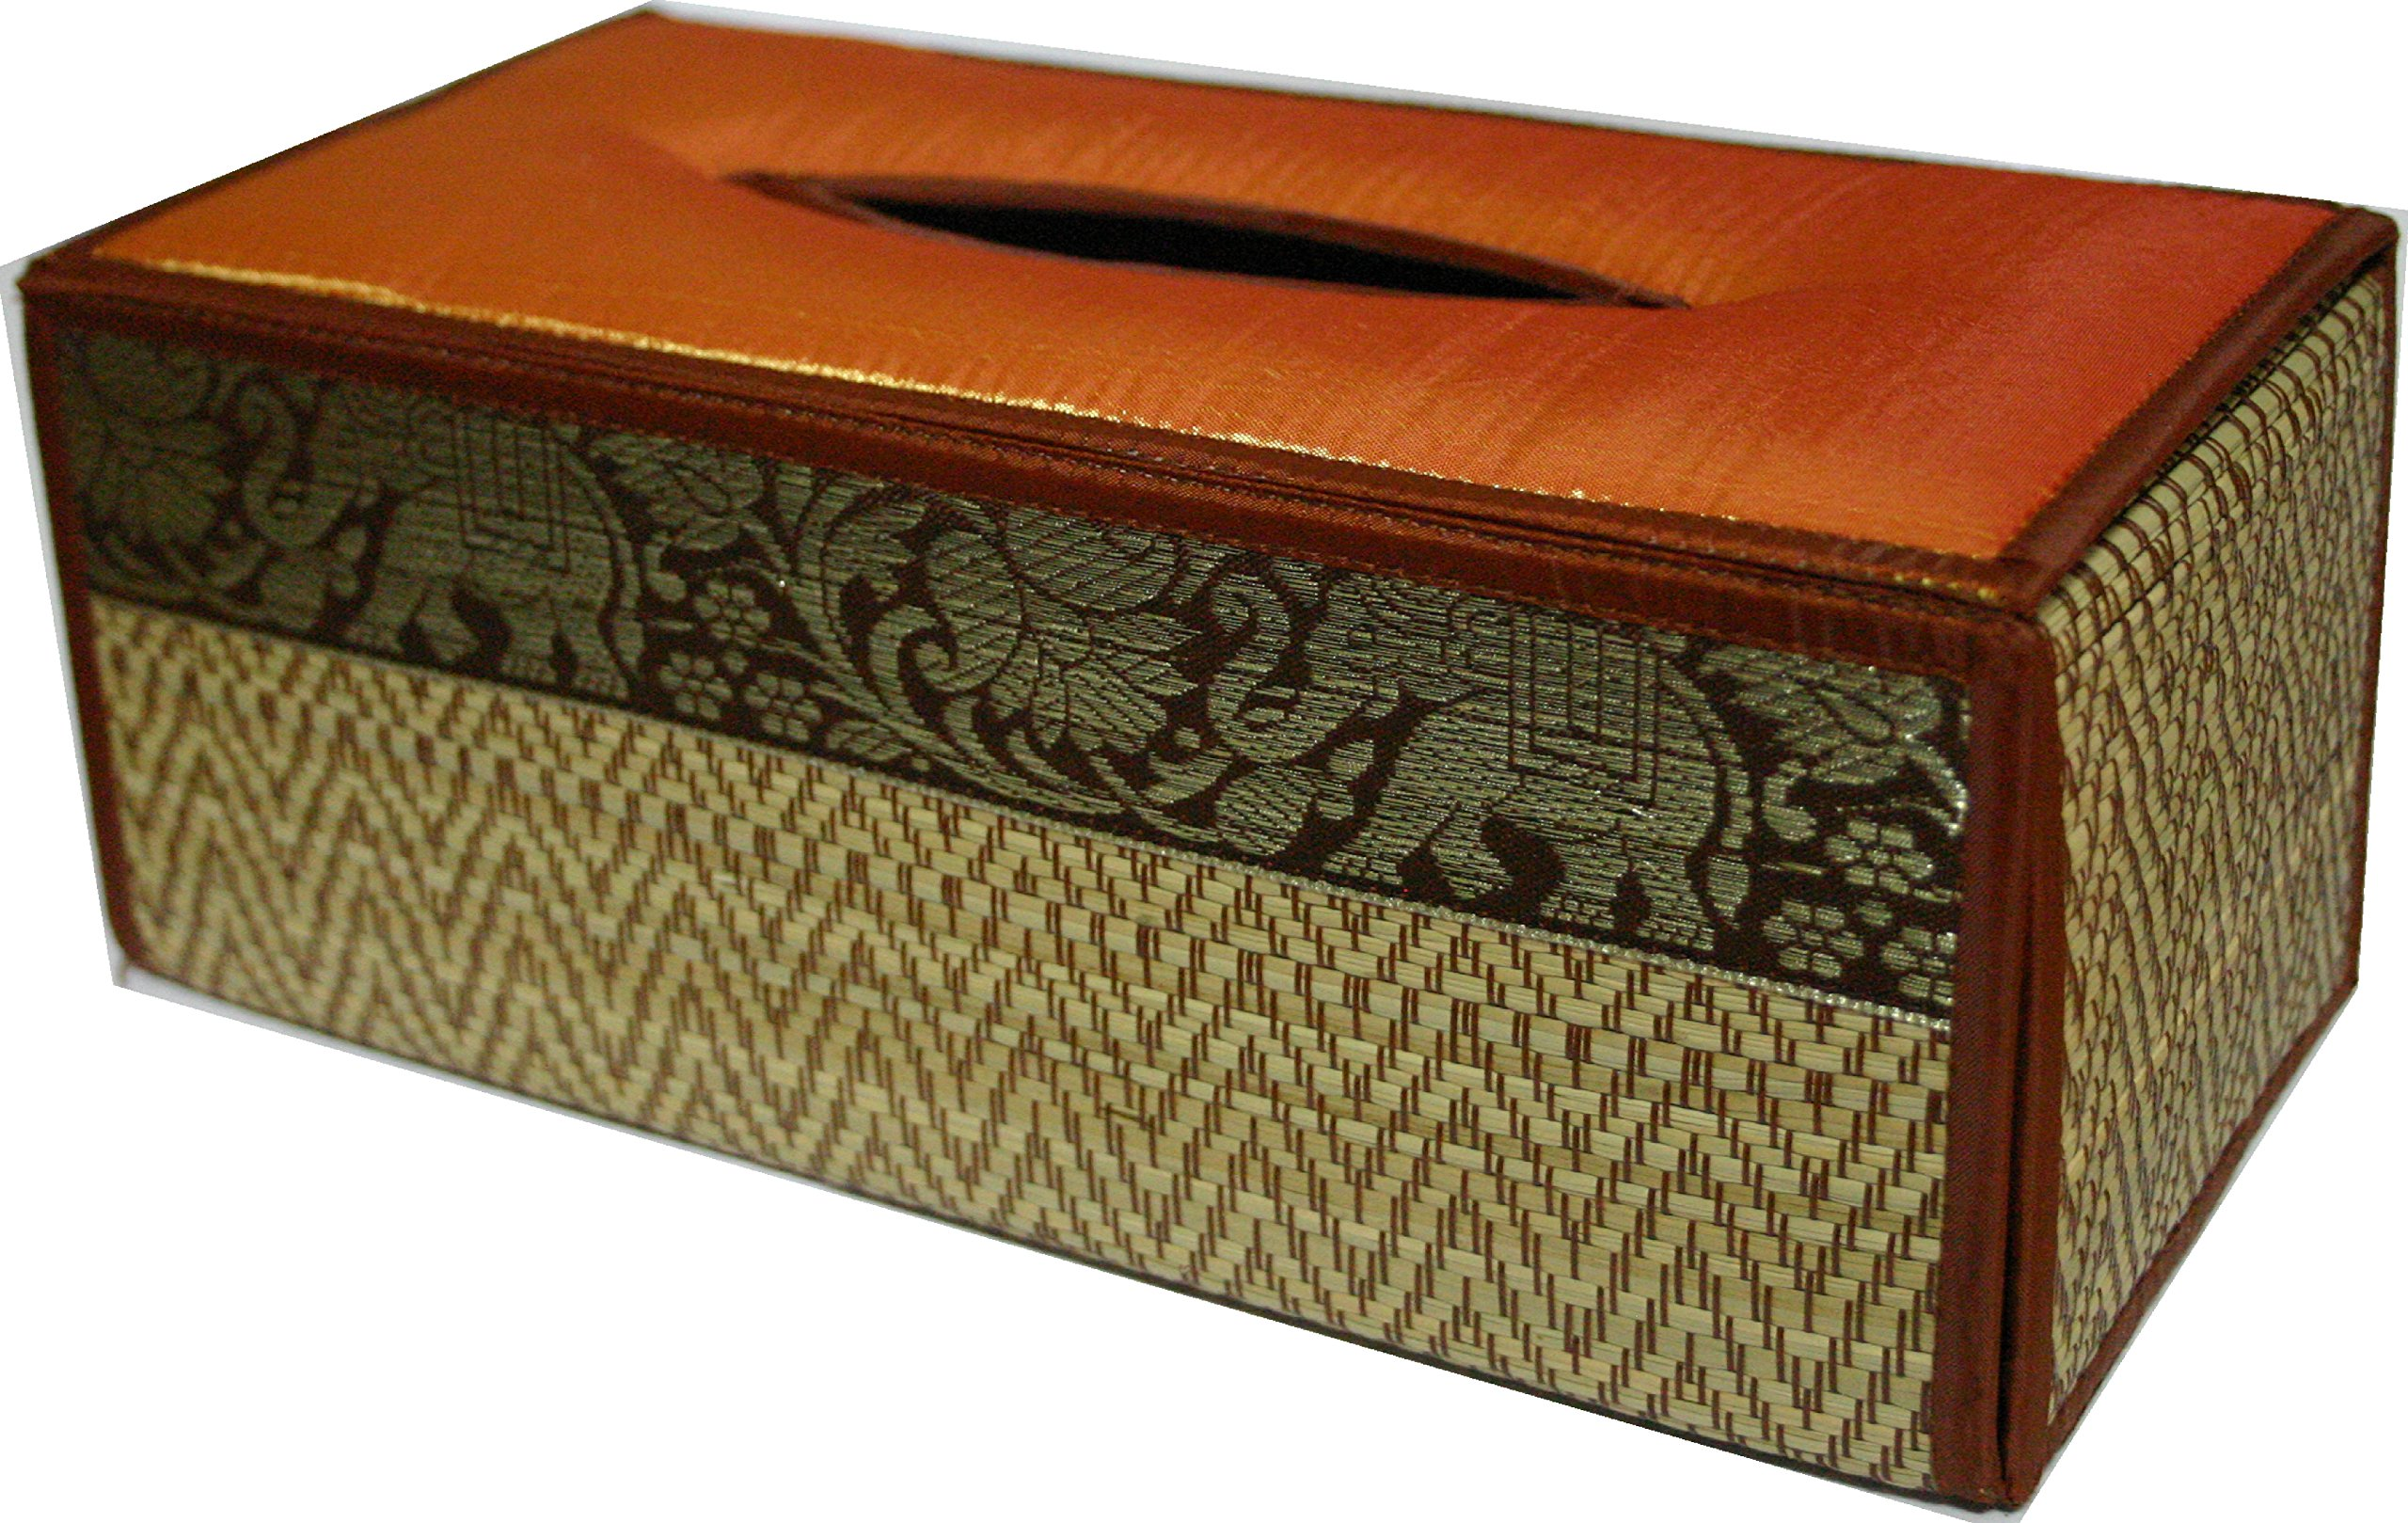 TOPMOST N-9002, Handmade Thai Woven Straw Reed Rectangular Tissue Box Cover with Silk Elephant Design 5x3.7x10.2 Inch by Topmost